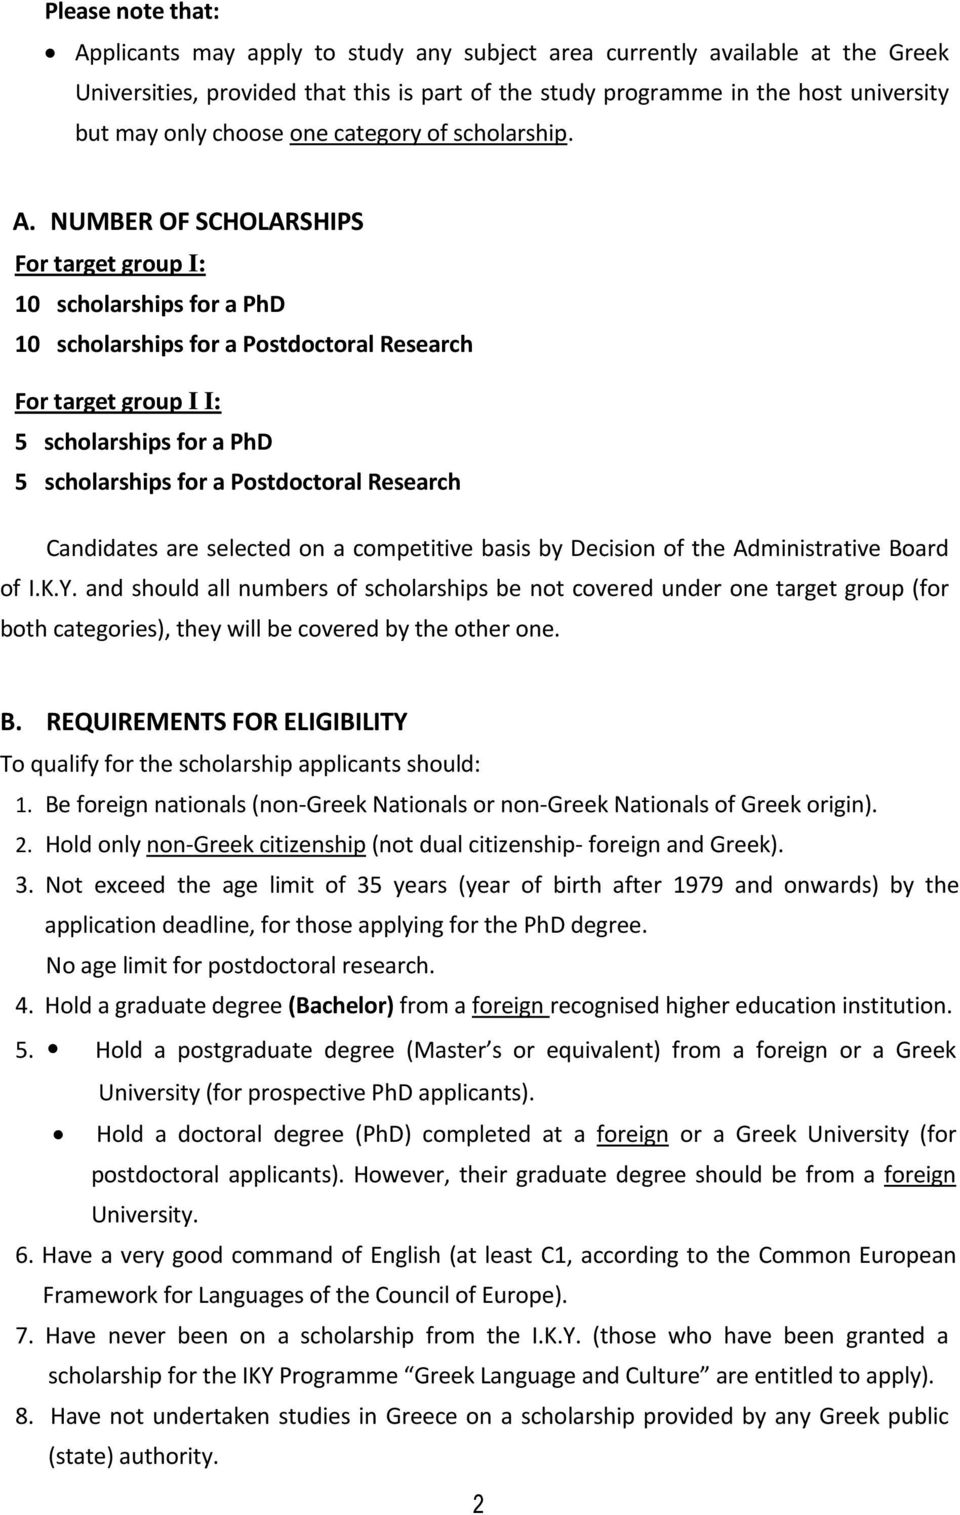 NUMBER OF SCHOLARSHIPS For target group I: 10 scholarships for a PhD 10 scholarships for a Postdoctoral Research For target group I I: 5 scholarships for a PhD 5 scholarships for a Postdoctoral